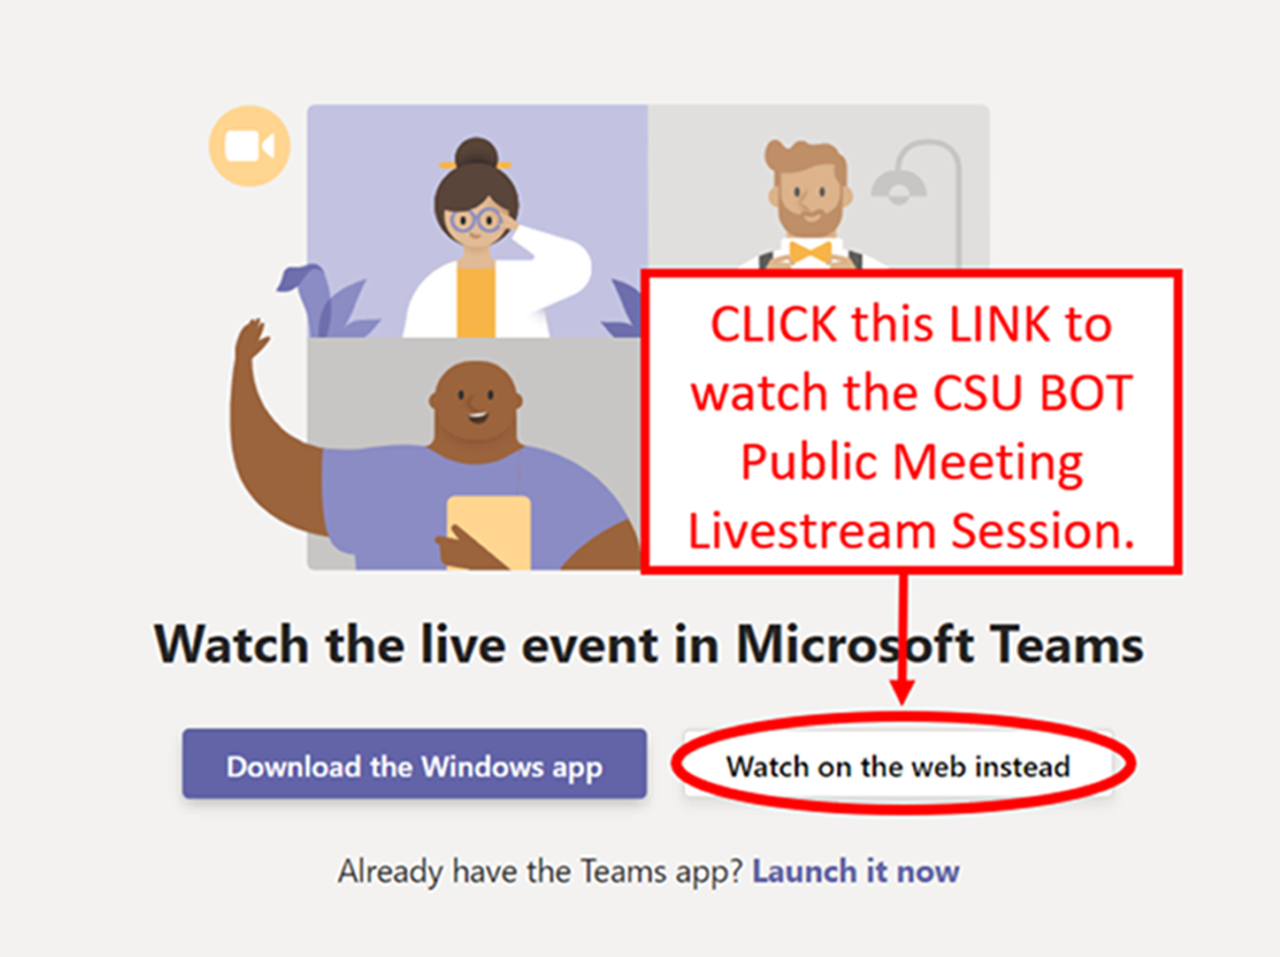 link to Microsoft Teams remote interface, Board of Trustees Meeting, Click This Link to watch the CSU BOT Public Meeting  Livestream Session